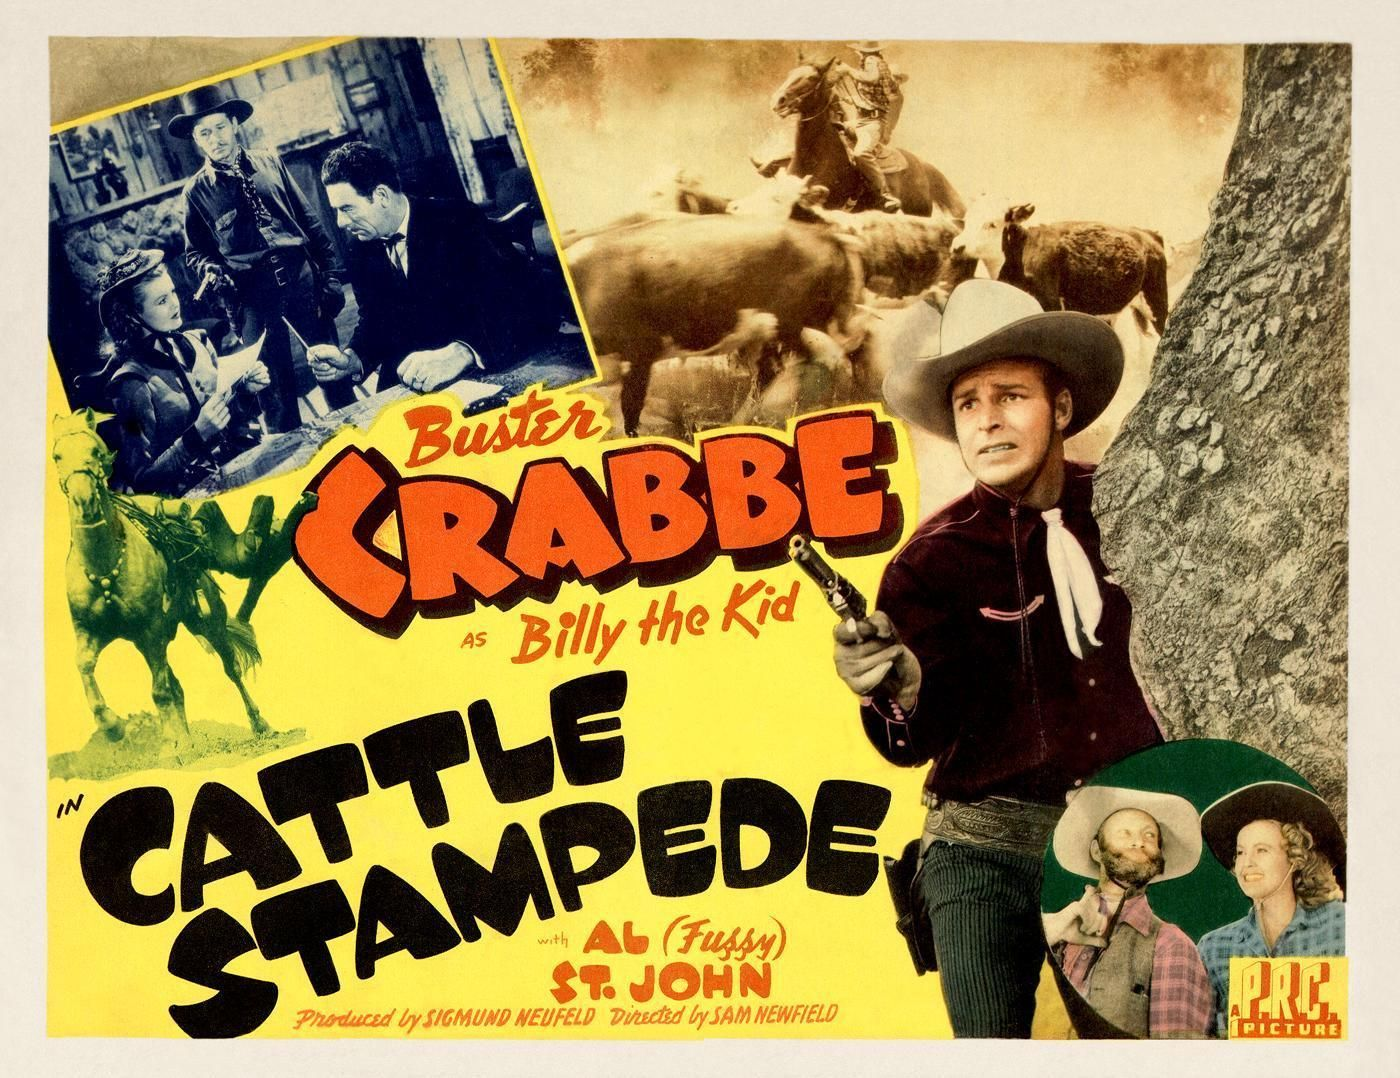 Cattle stampede 1943 classic movies b movie western